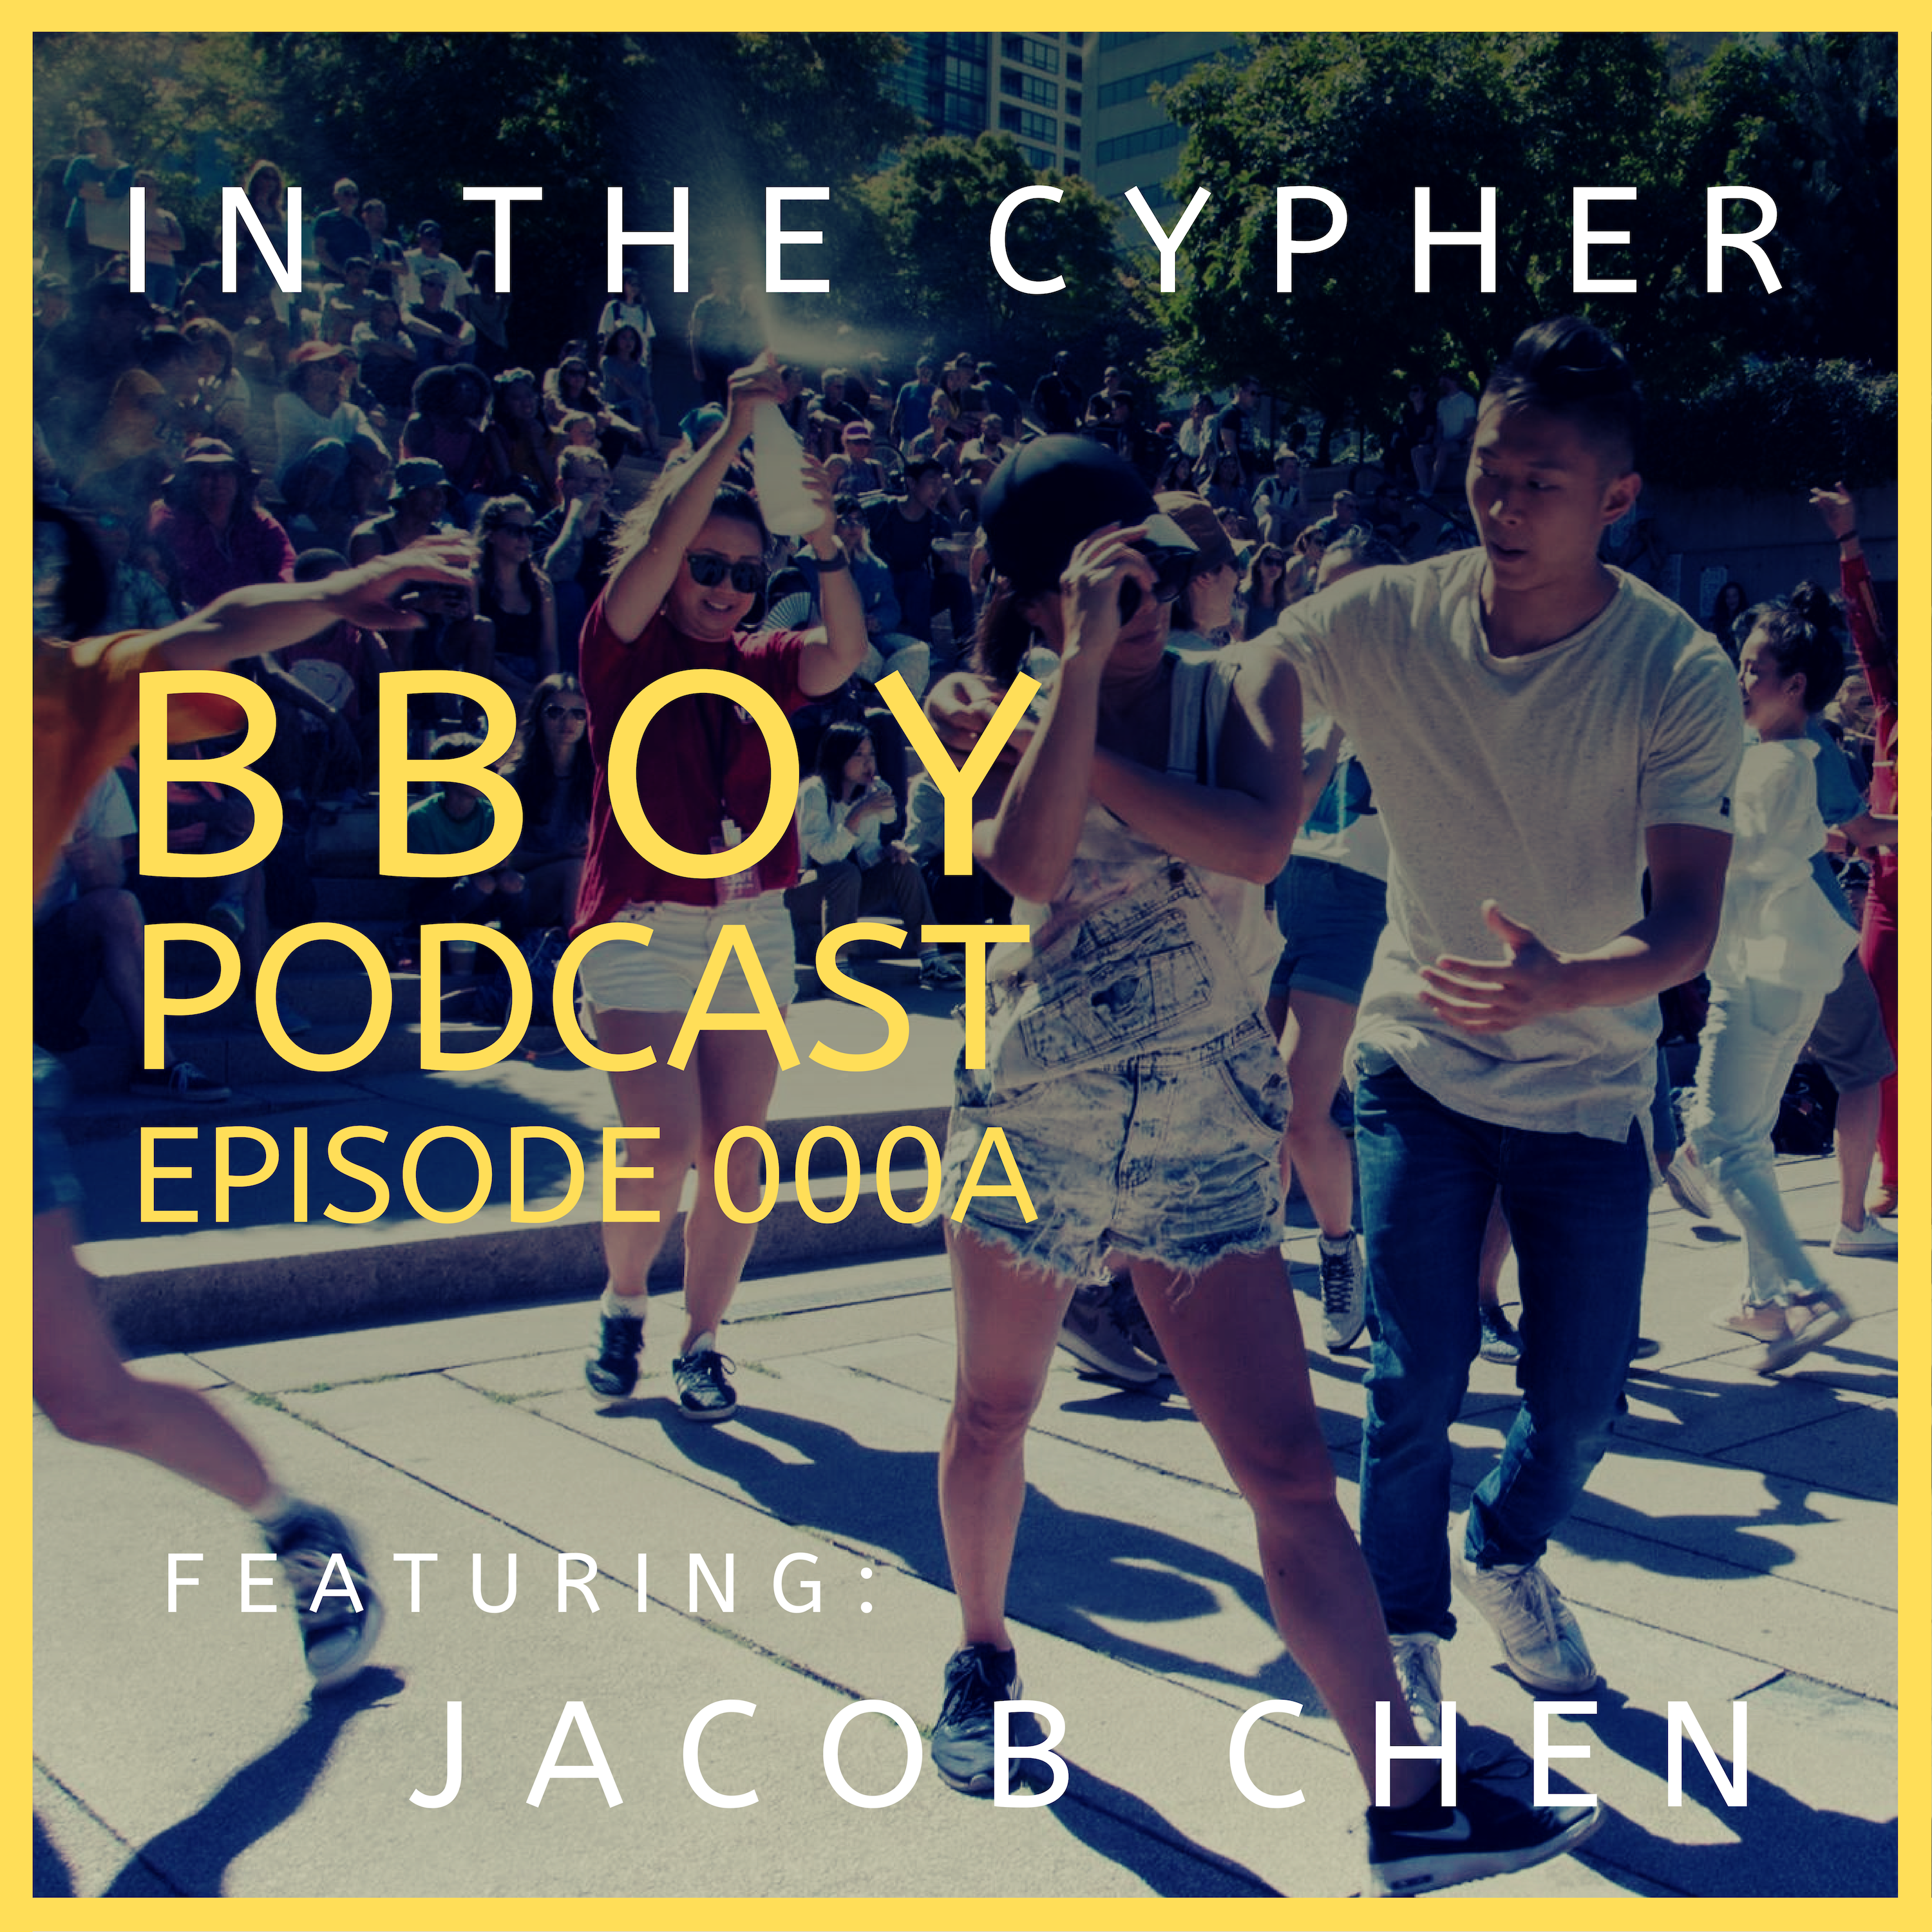 000B) Calisthenics and Stretching for BBoys with Jacob Chen